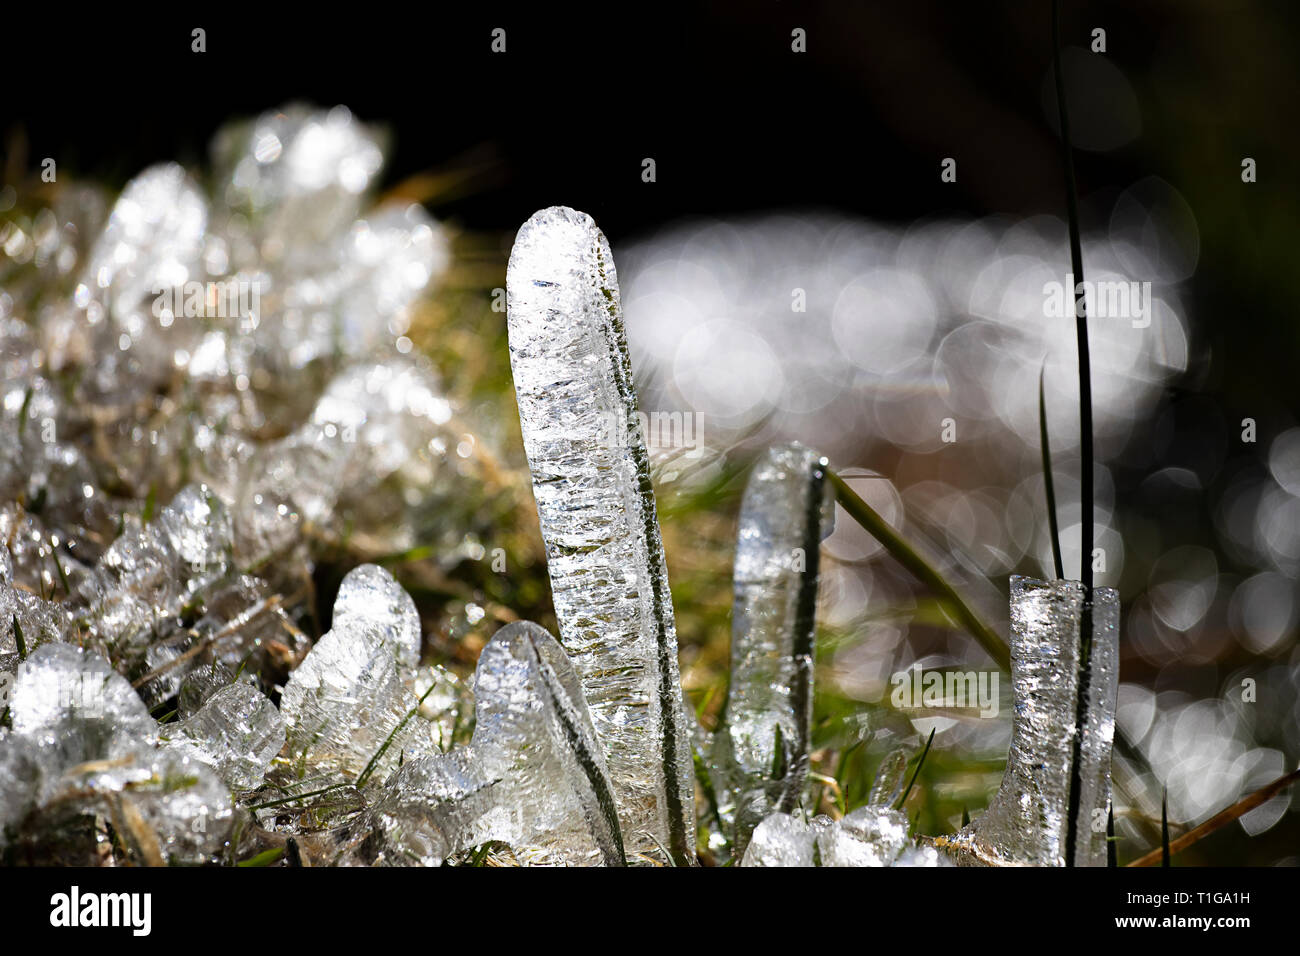 Freshness of Pre-spring. Melting ice on green sprouting fresh shoots of plants. Shiny ice fancy forms close-up. Icicles with green grass. Early spring - Stock Image